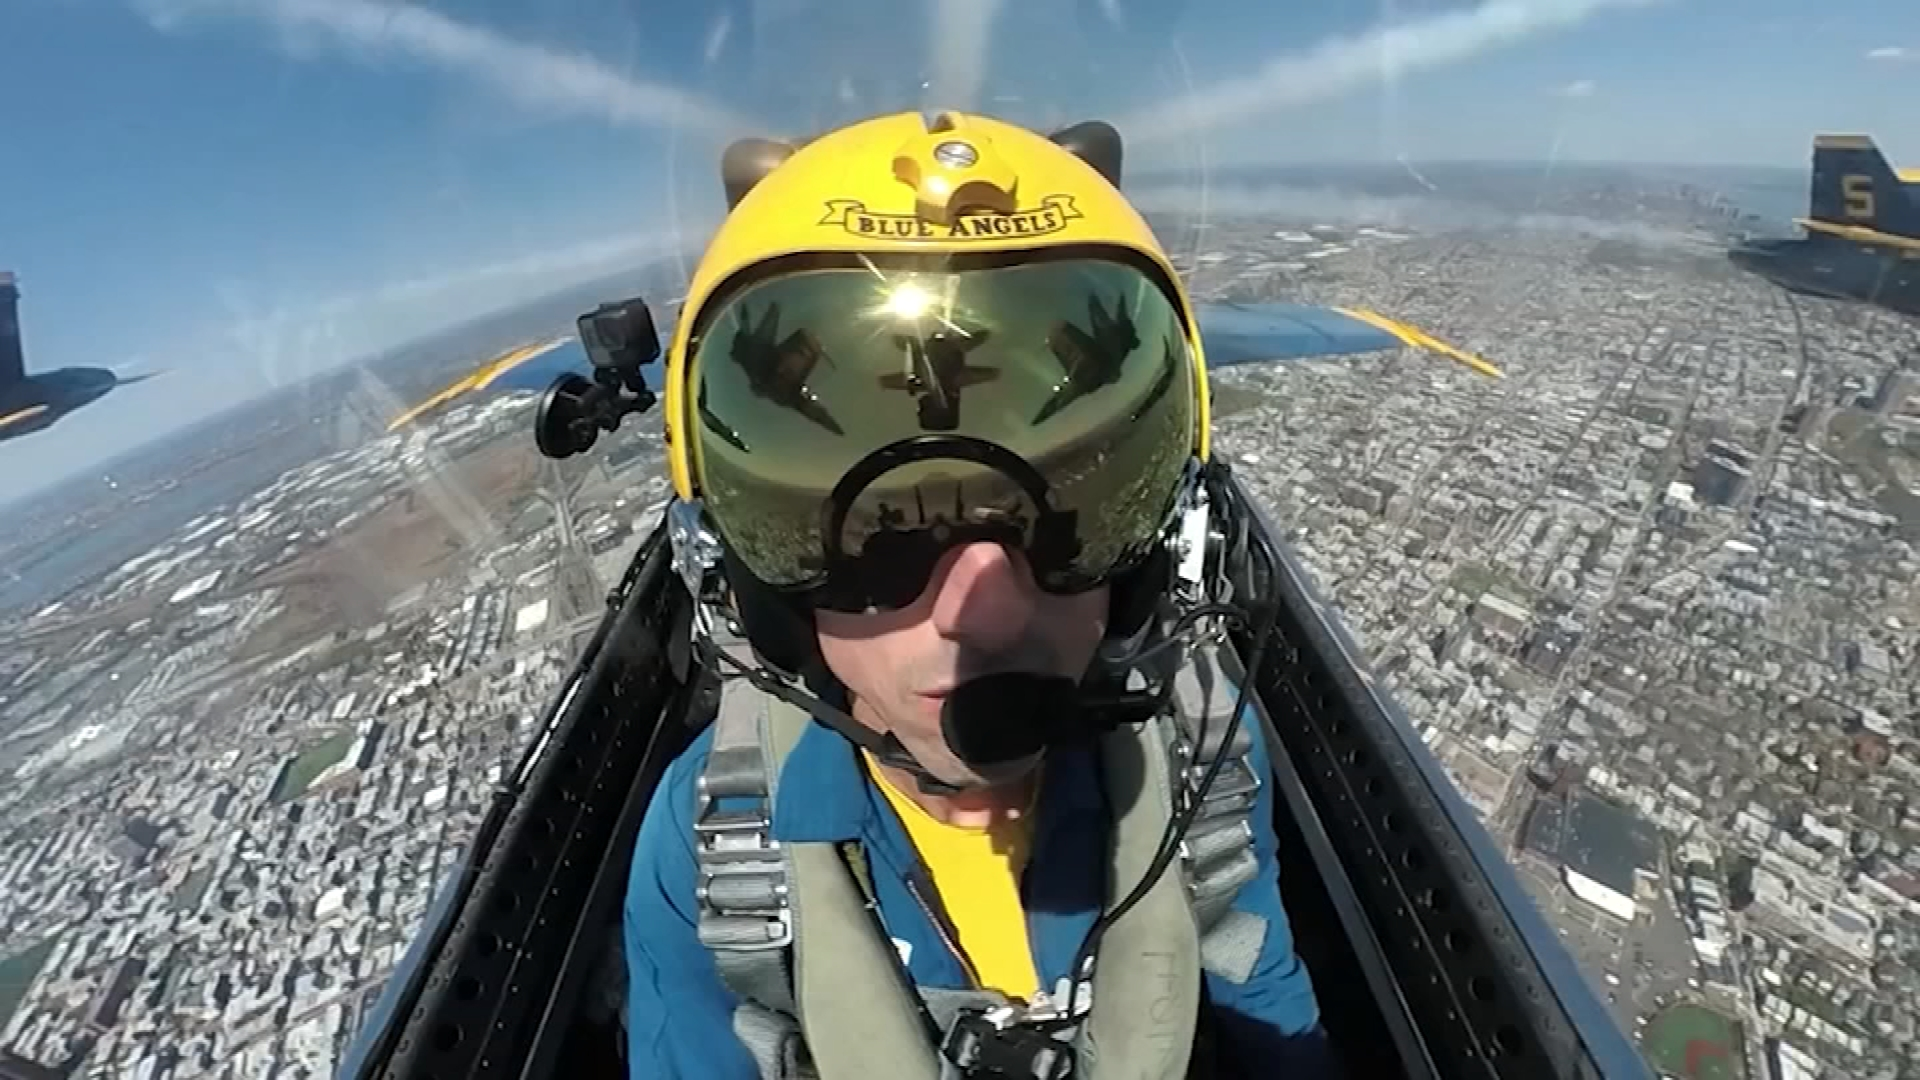 04 29 20 Blue Angels Flyover Vo.transfer.transcoded.01.transfer